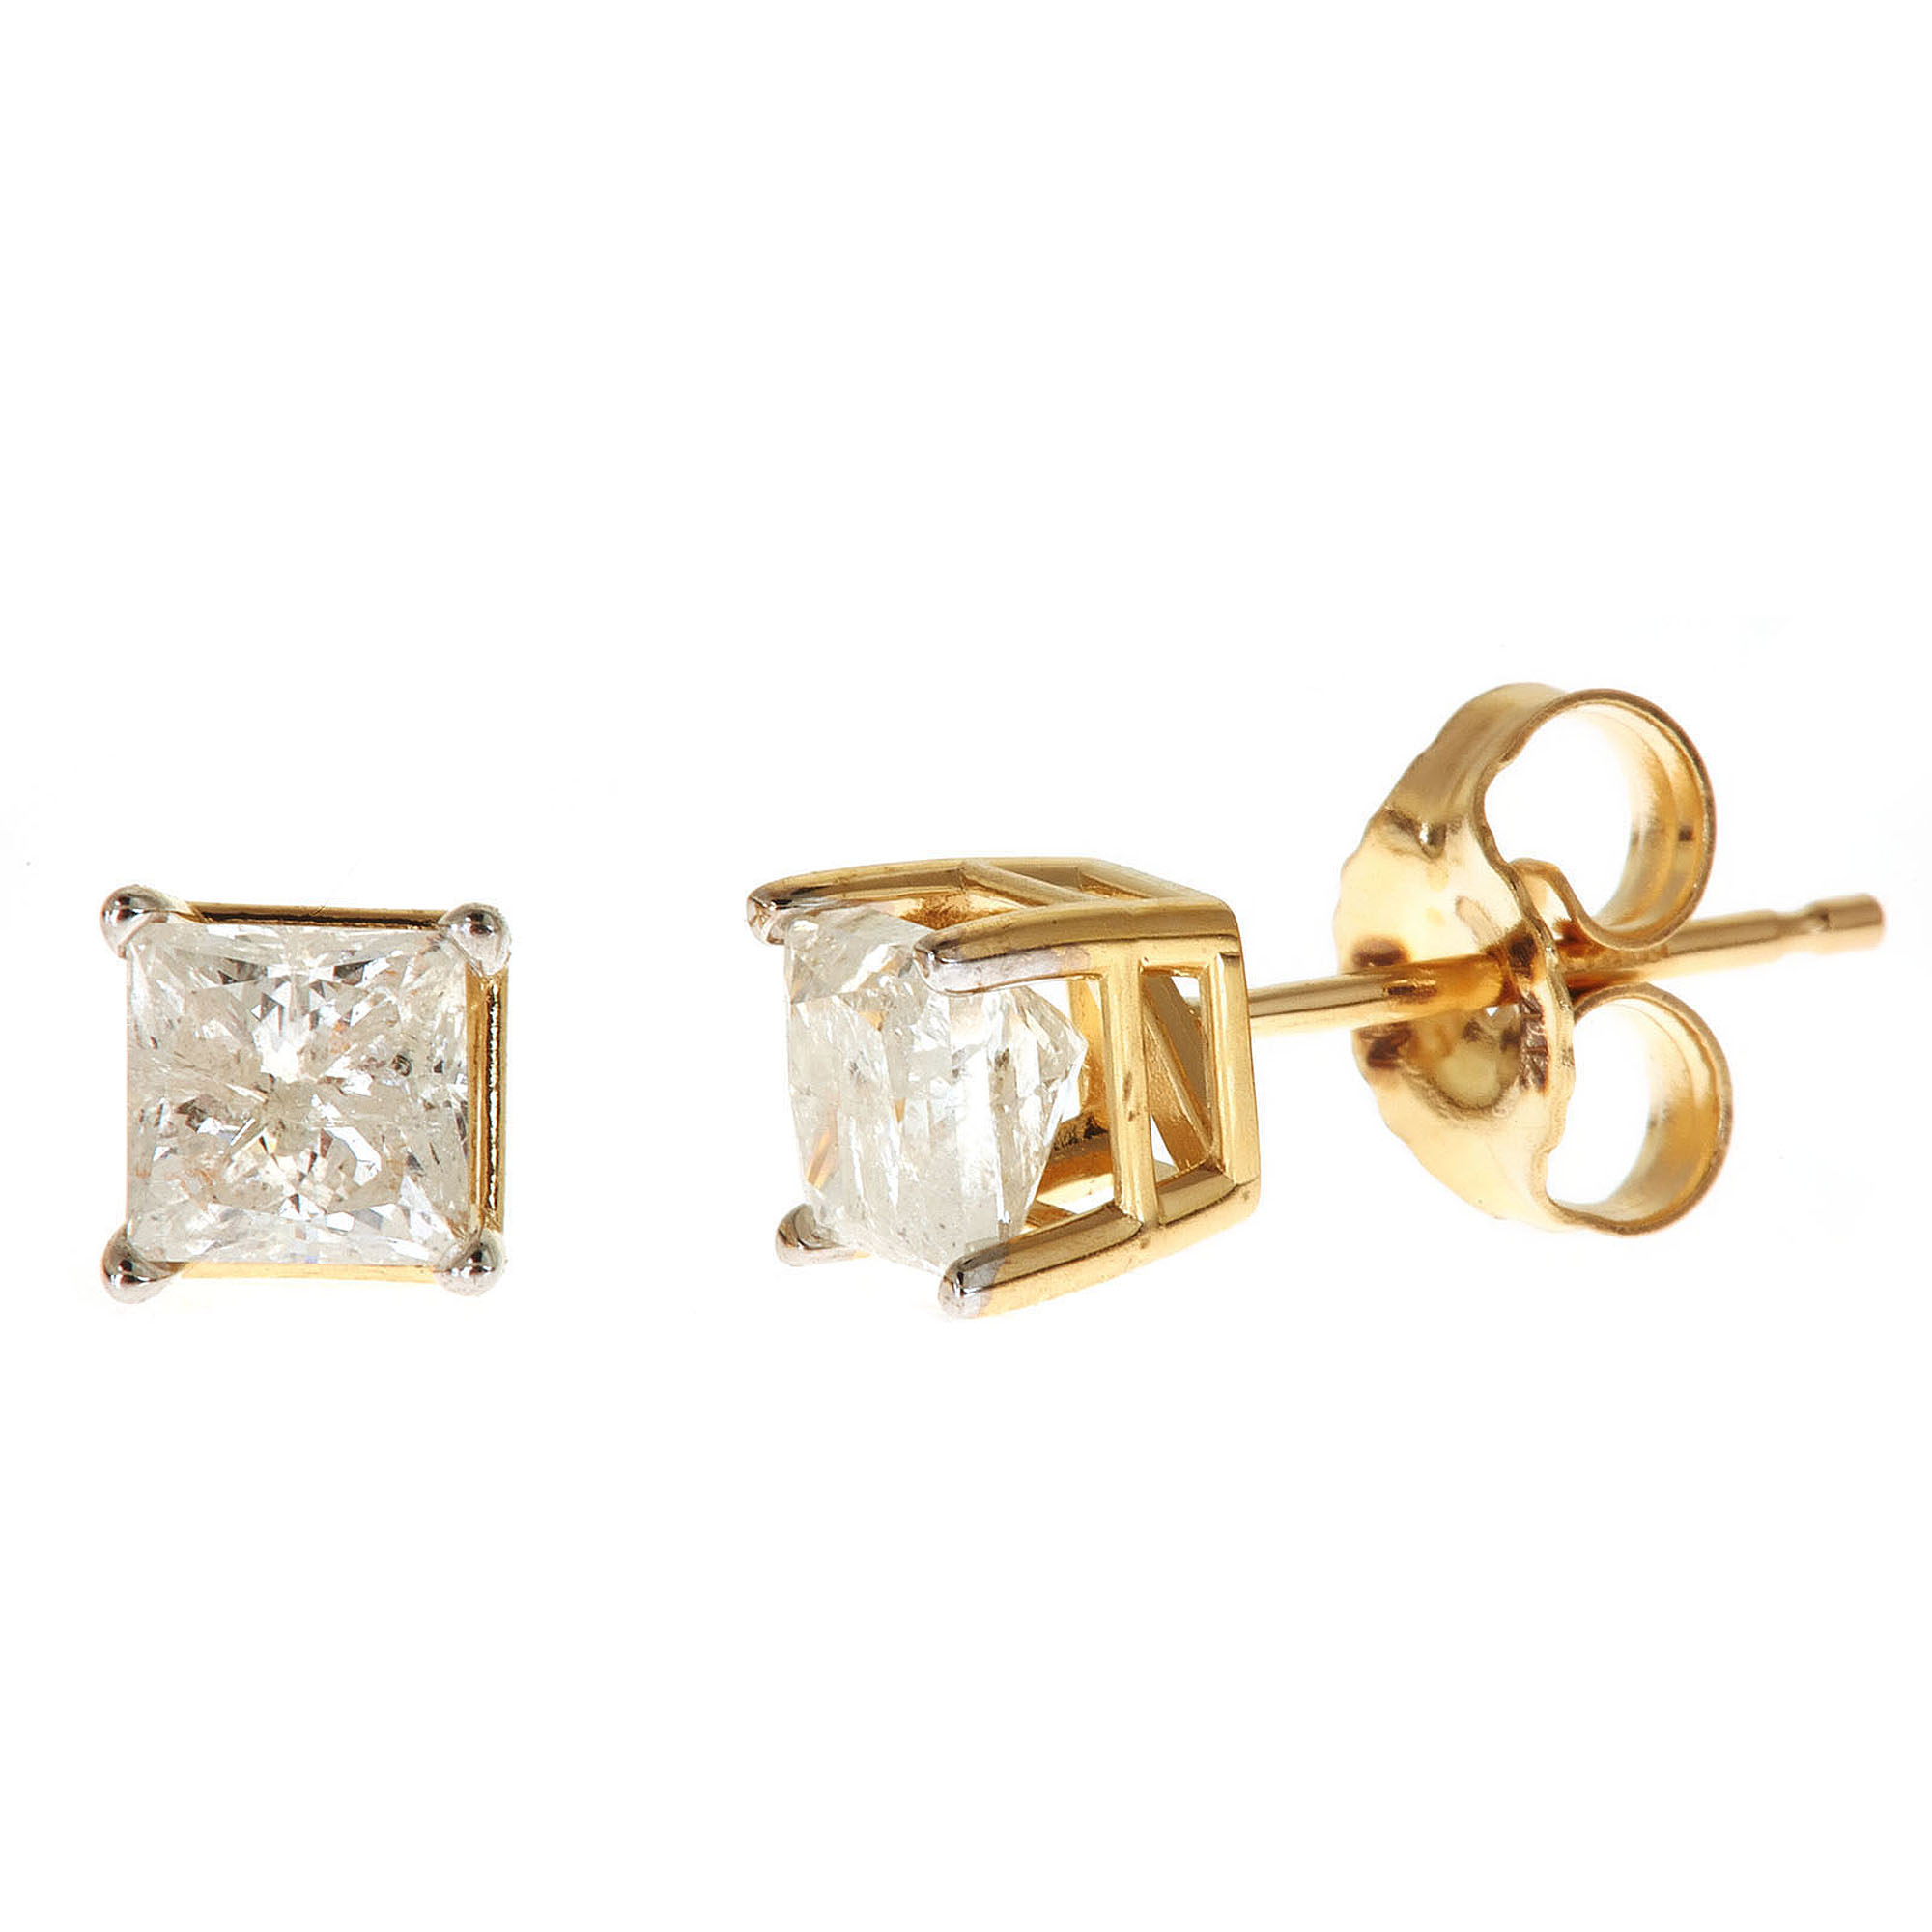 1 Carat T W Princess White Diamond 14kt Yellow Gold Stud Earrings